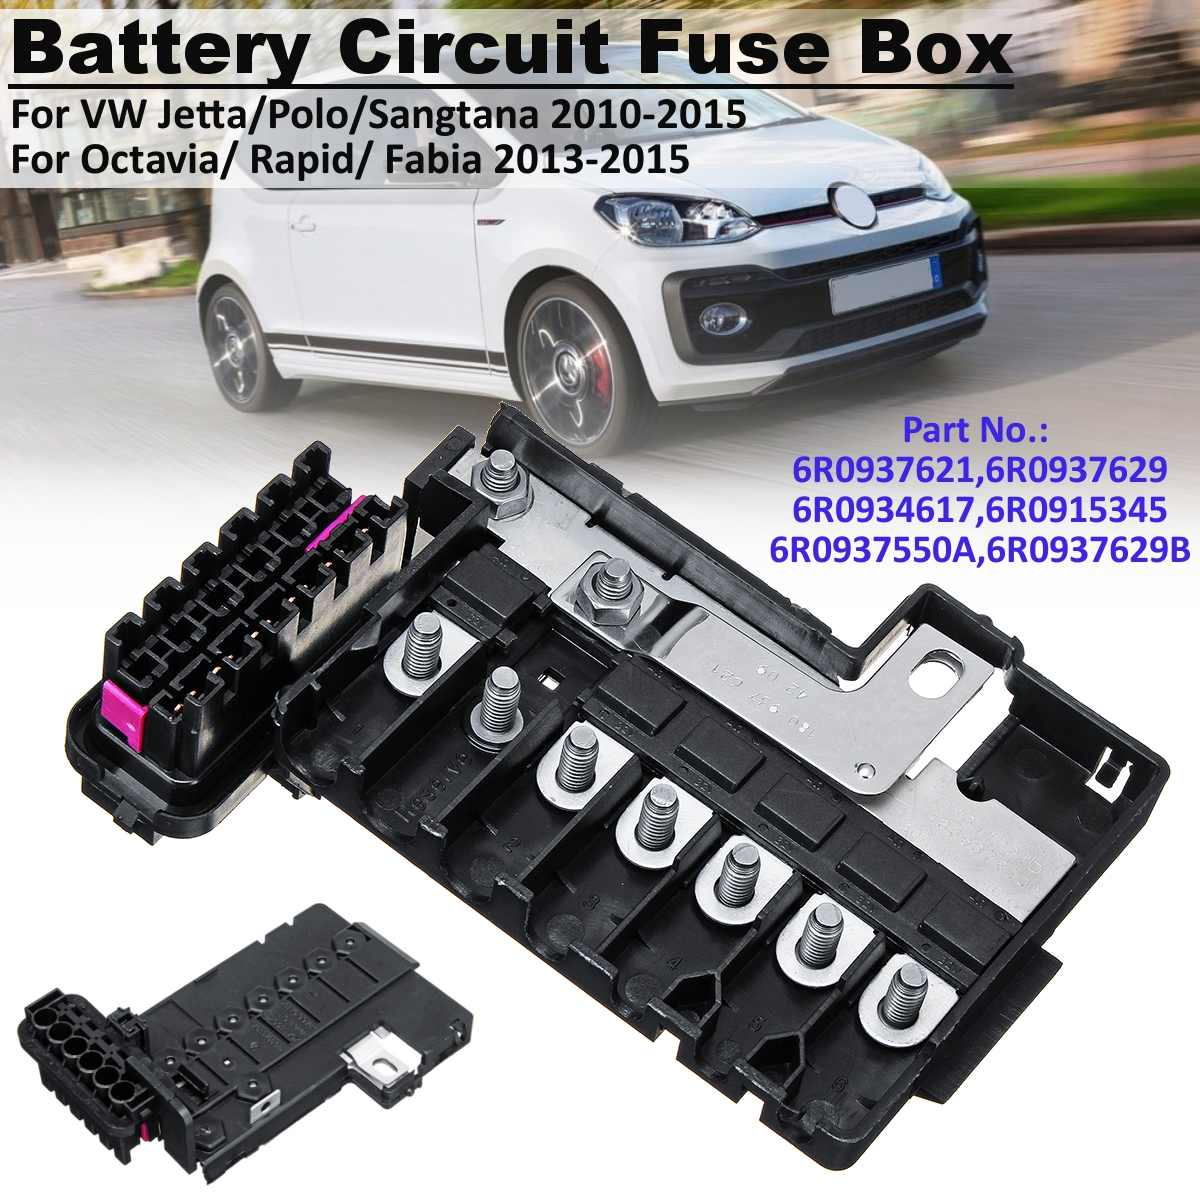 battery circuit fuse box for vw jetta mk6 polo up  sangtana/octavia/rapid/fabia 6r0 934 617 #6r0937621 6r0937629-in fuses from  automobiles & motorcycles on